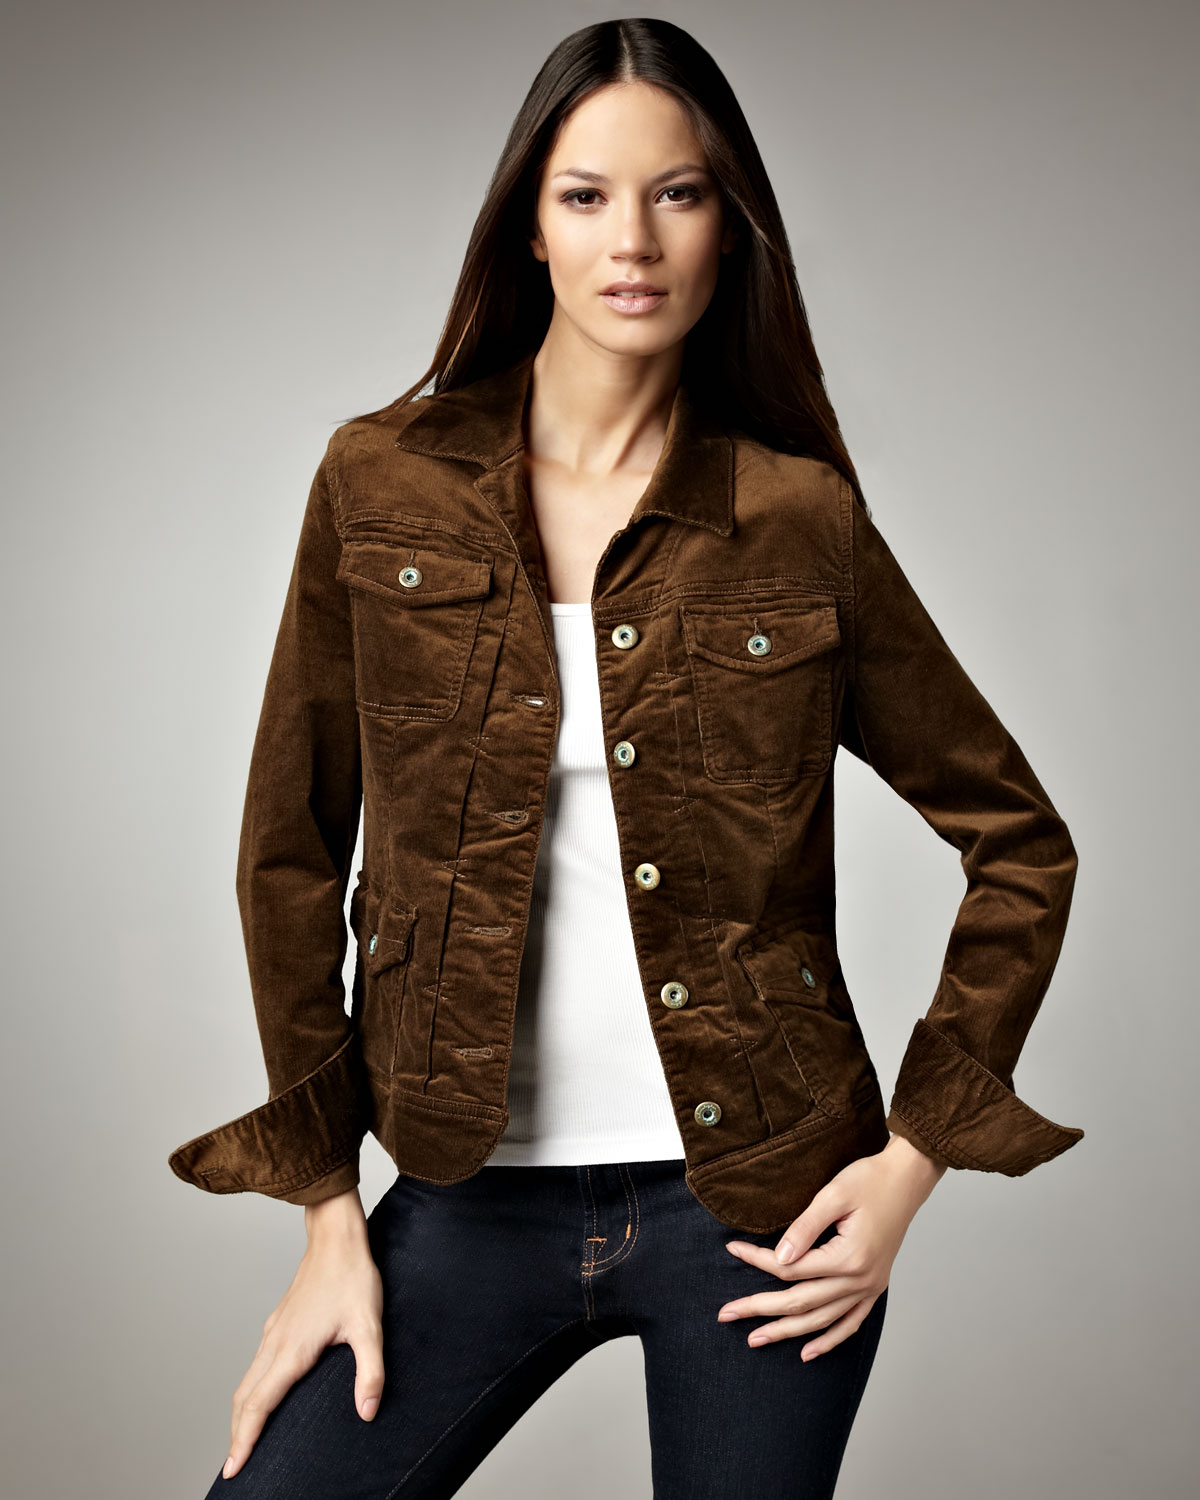 Corduroy Jacket For Women